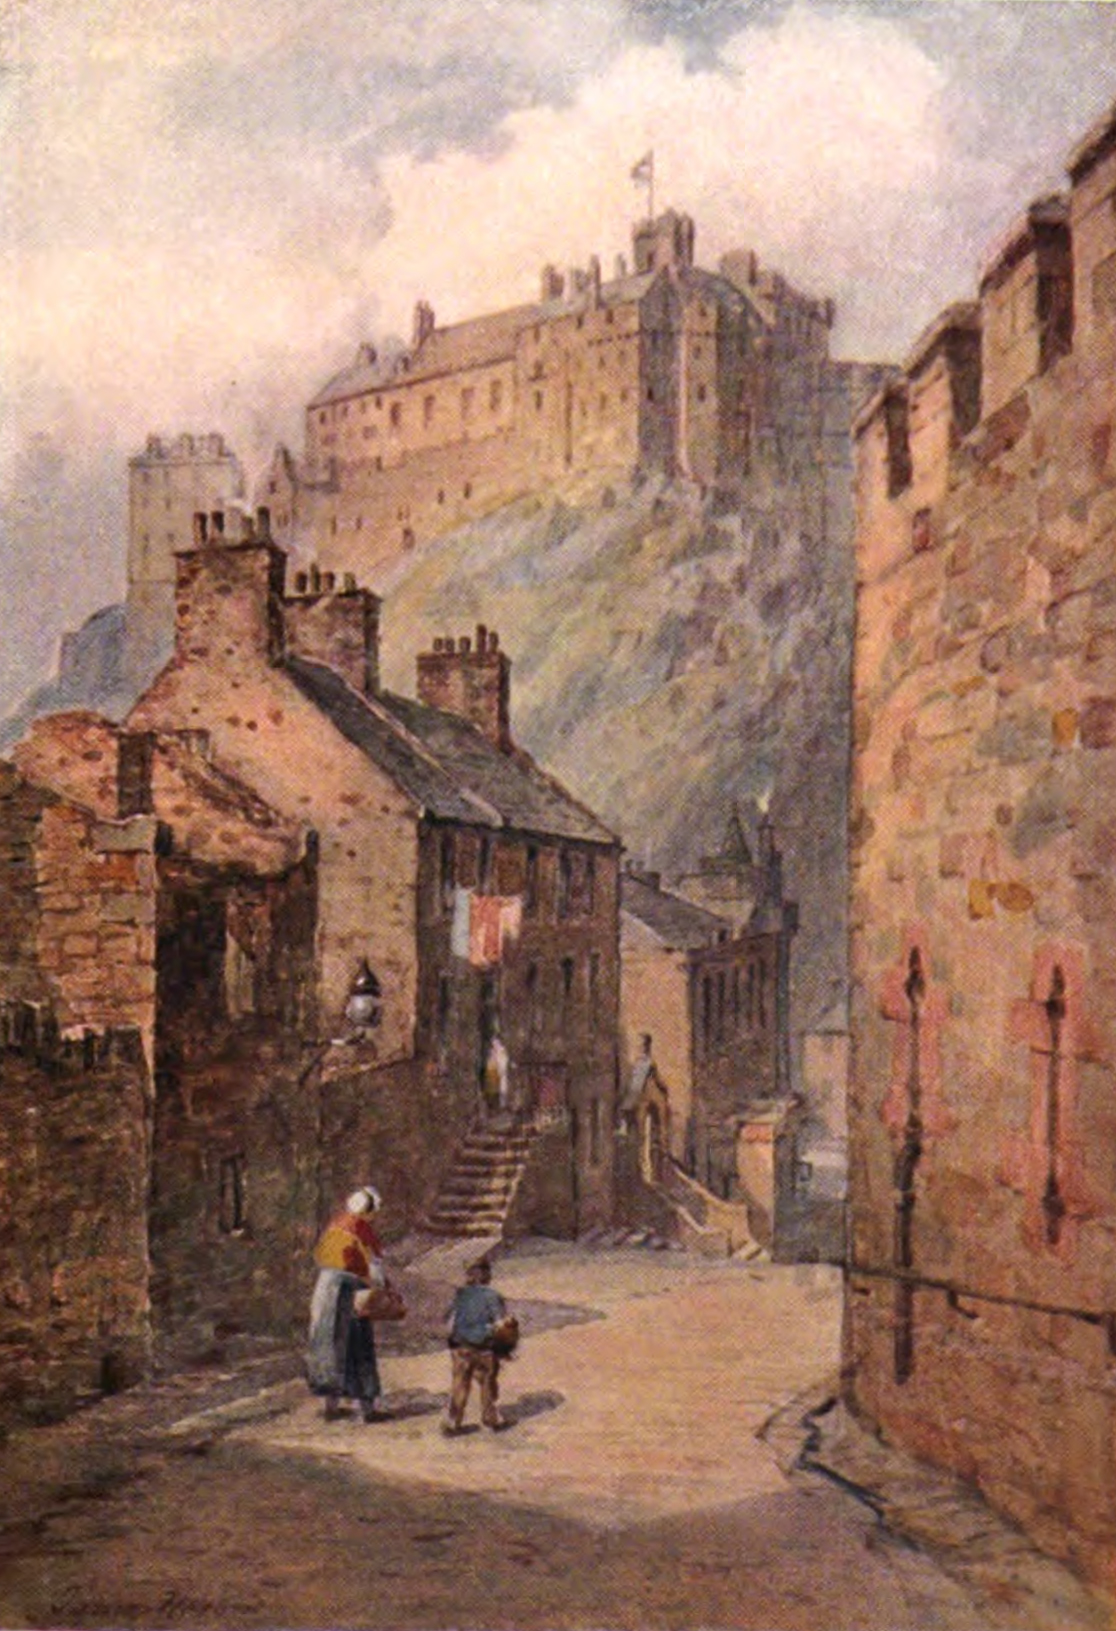 Edinburgh, Robert Louis Stevenson, James Heron, DjVu pg 180.jpg